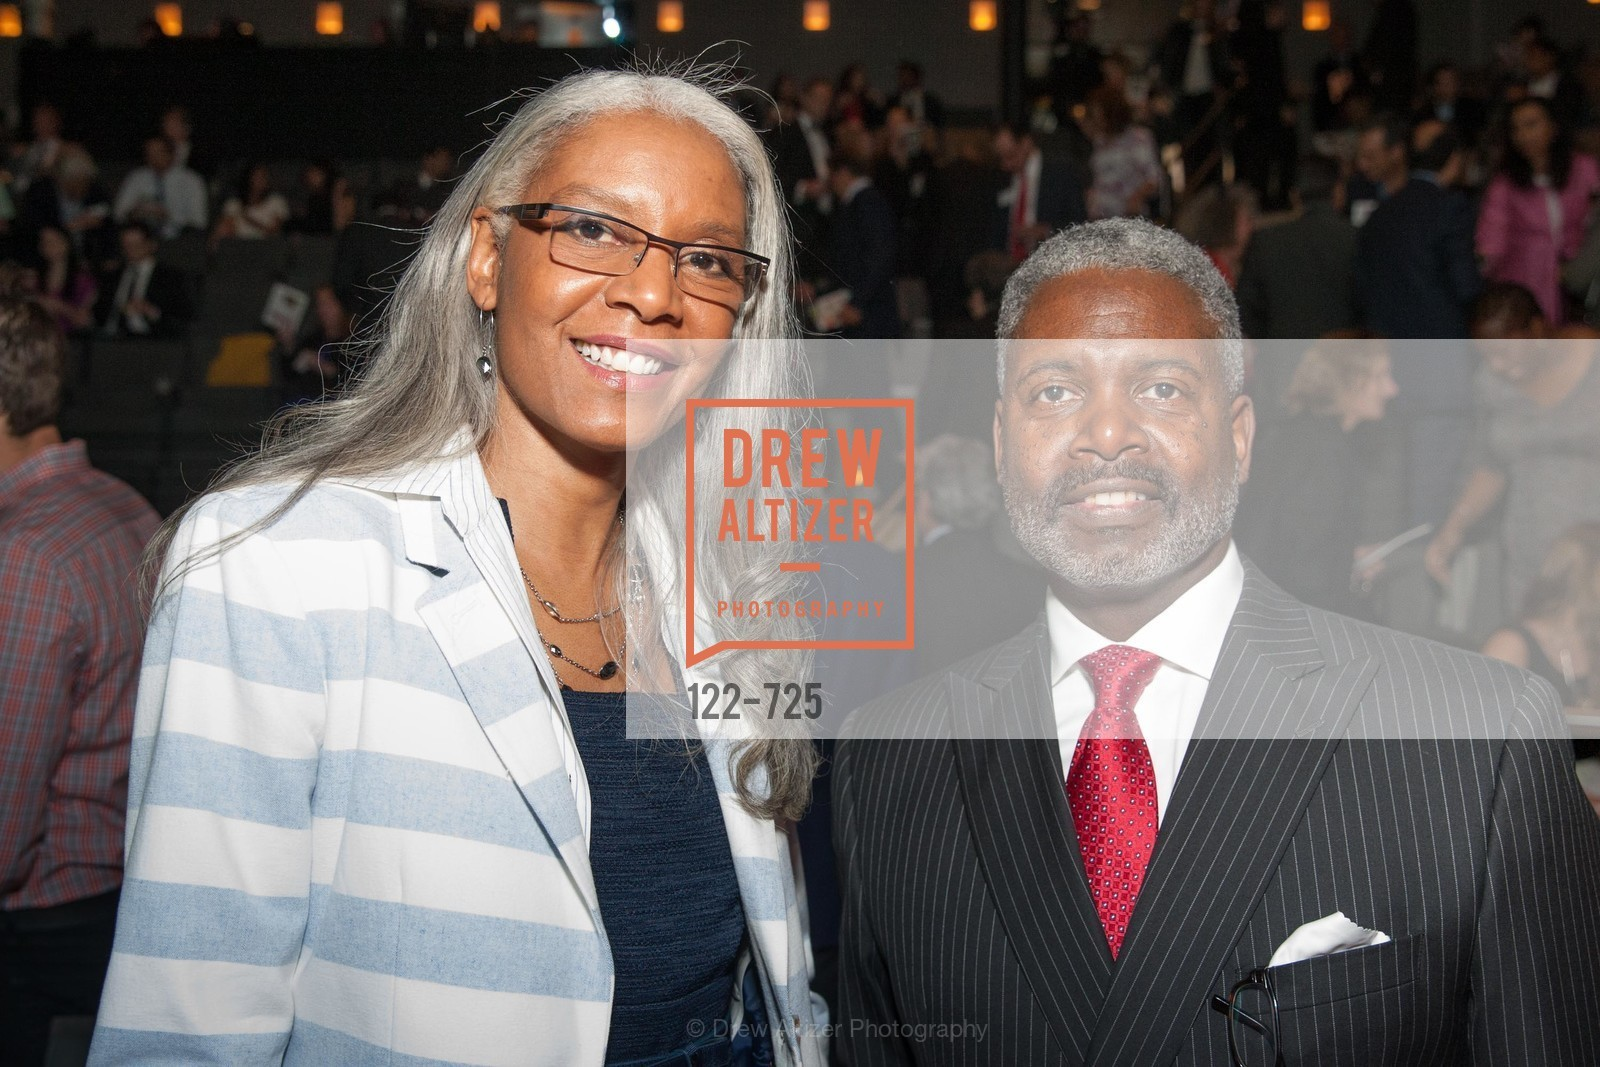 Lucia Hicks-Williams, Tommie Moon, COMMON SENSE Media Awards 2015, US, May 13th, 2015,Drew Altizer, Drew Altizer Photography, full-service agency, private events, San Francisco photographer, photographer california